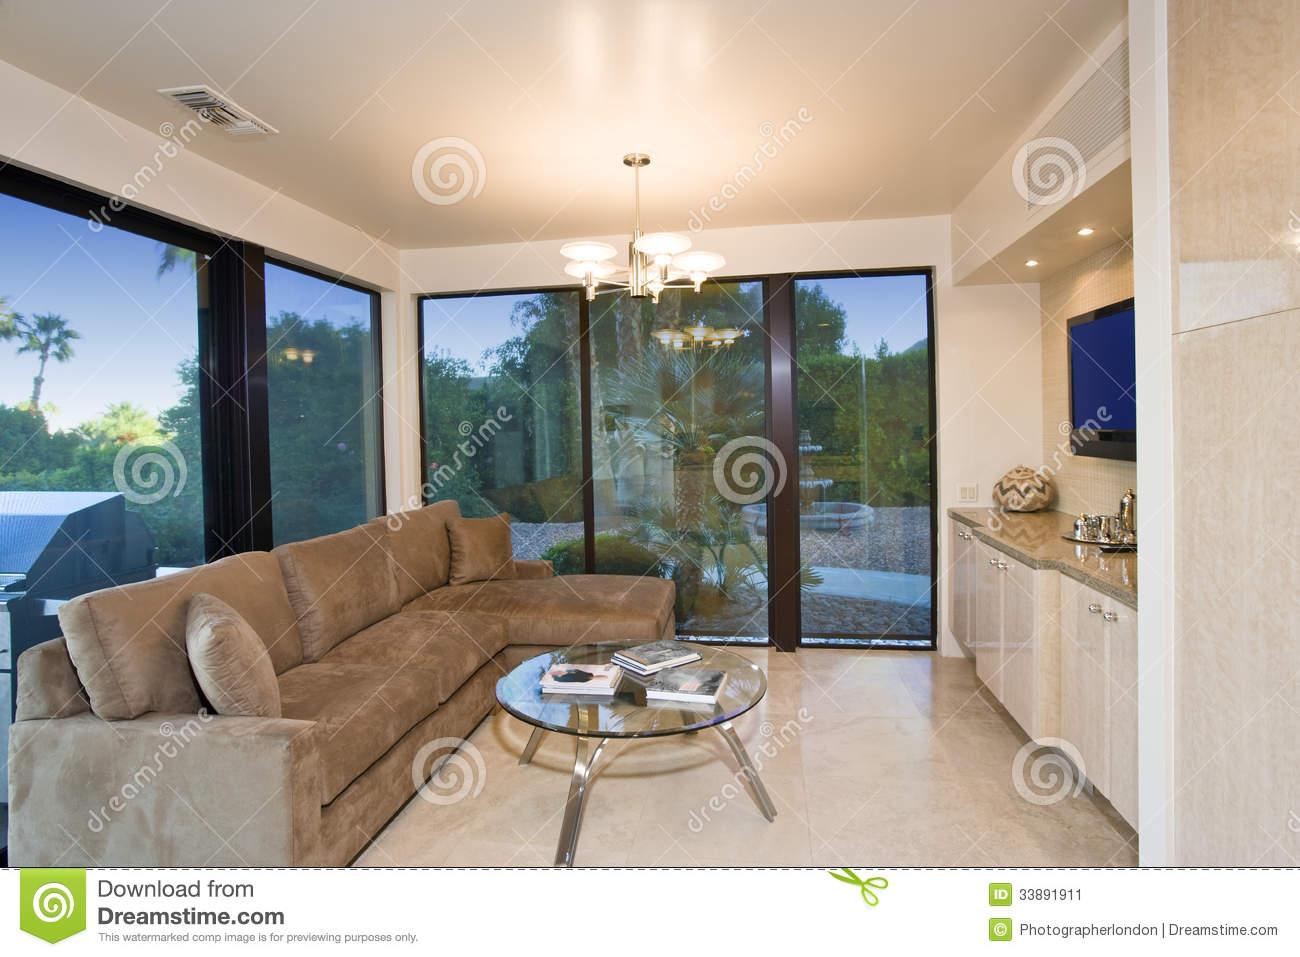 Keuken Flat Living Room With View Of Patio Stock Image - Image Of Dusk